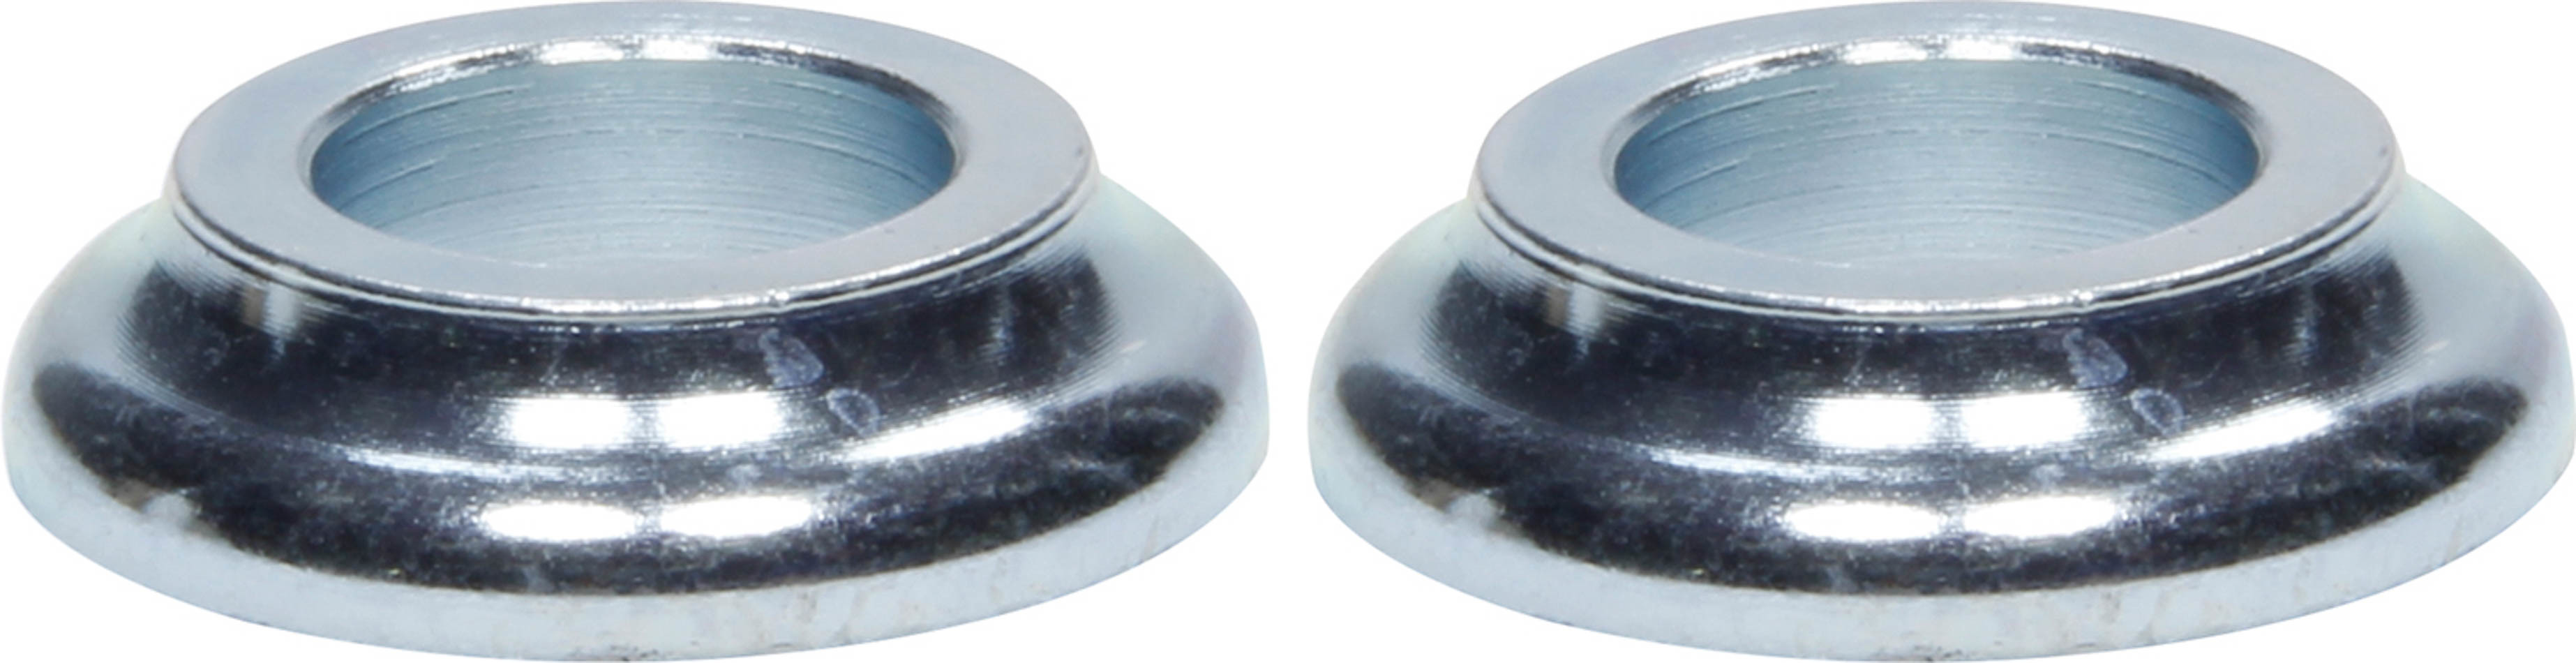 Ti22 Performance 8210 Tapered Spacer, 1/2 in ID, 1/4 in Thick, Steel, Zinc Oxide, Universal, Pair